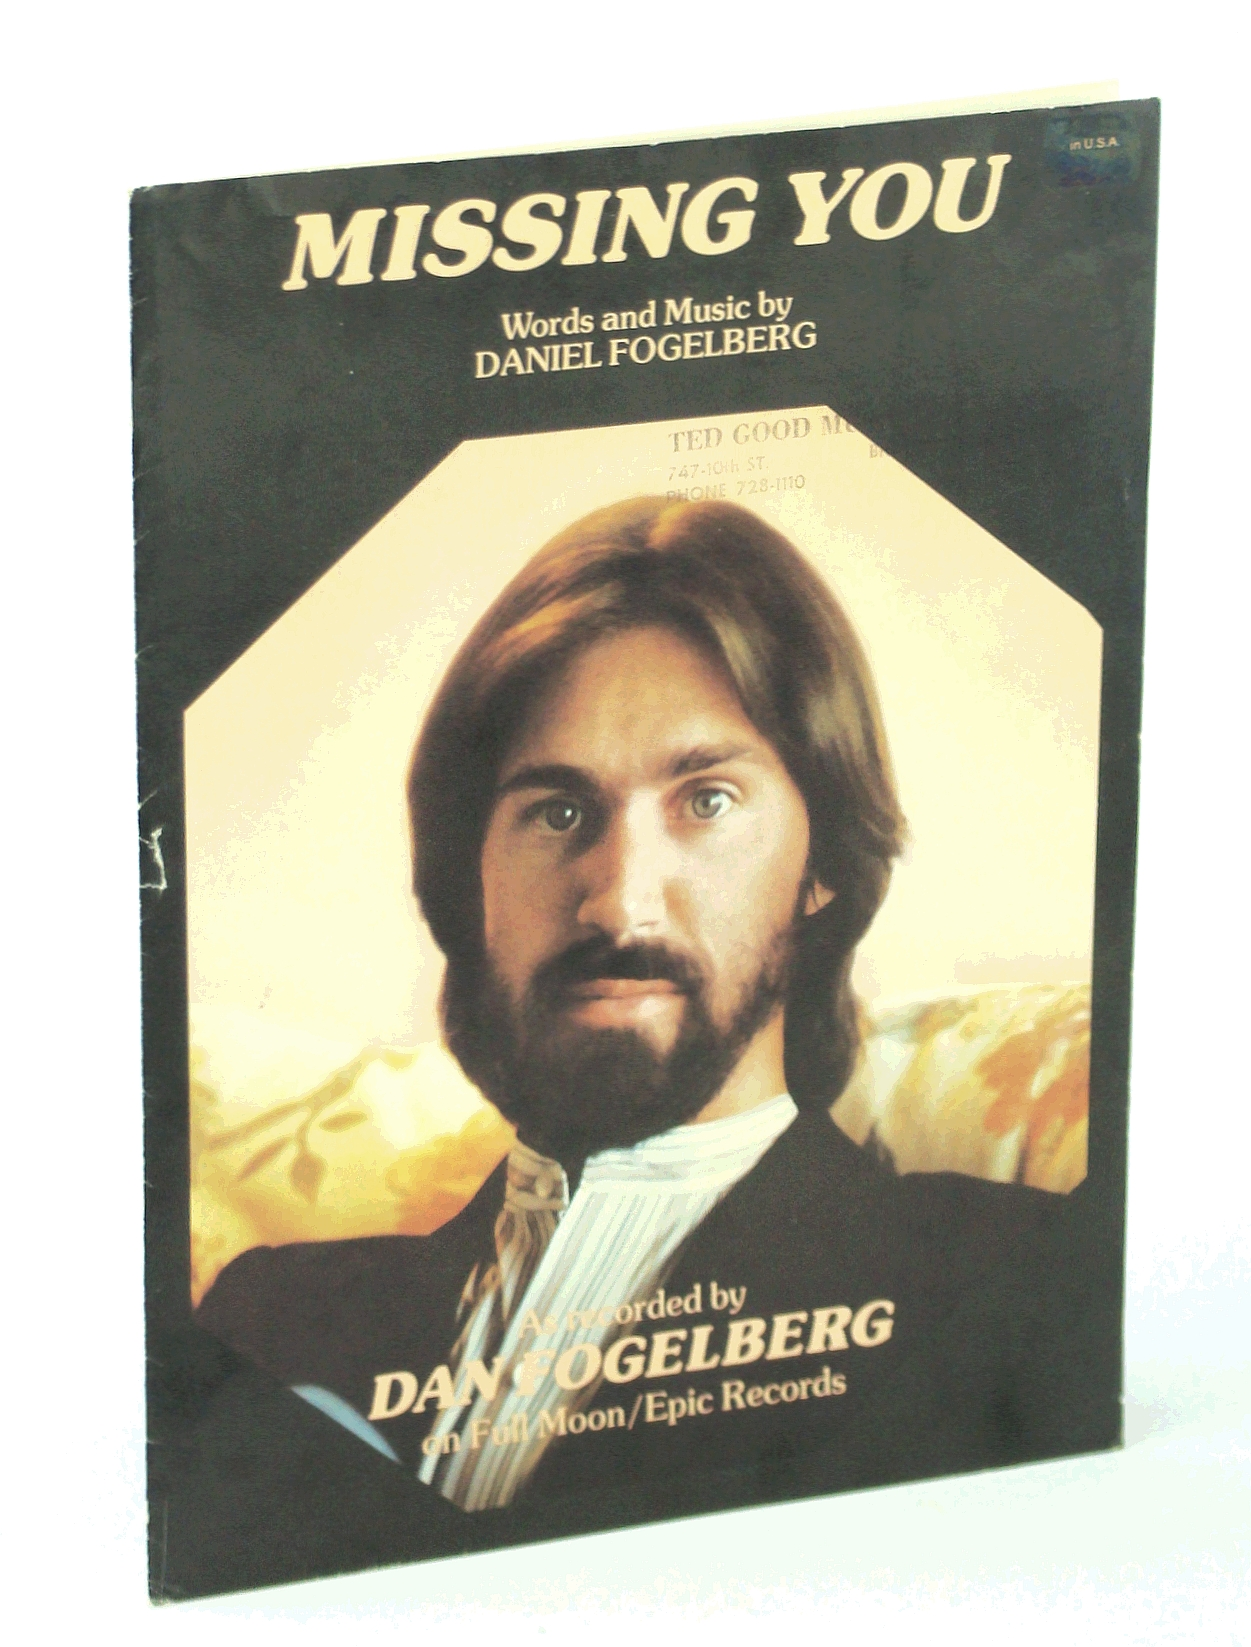 Image for Missing You (Fogelberg, Dan) (1982) - Piano/Vocal Sheet Music